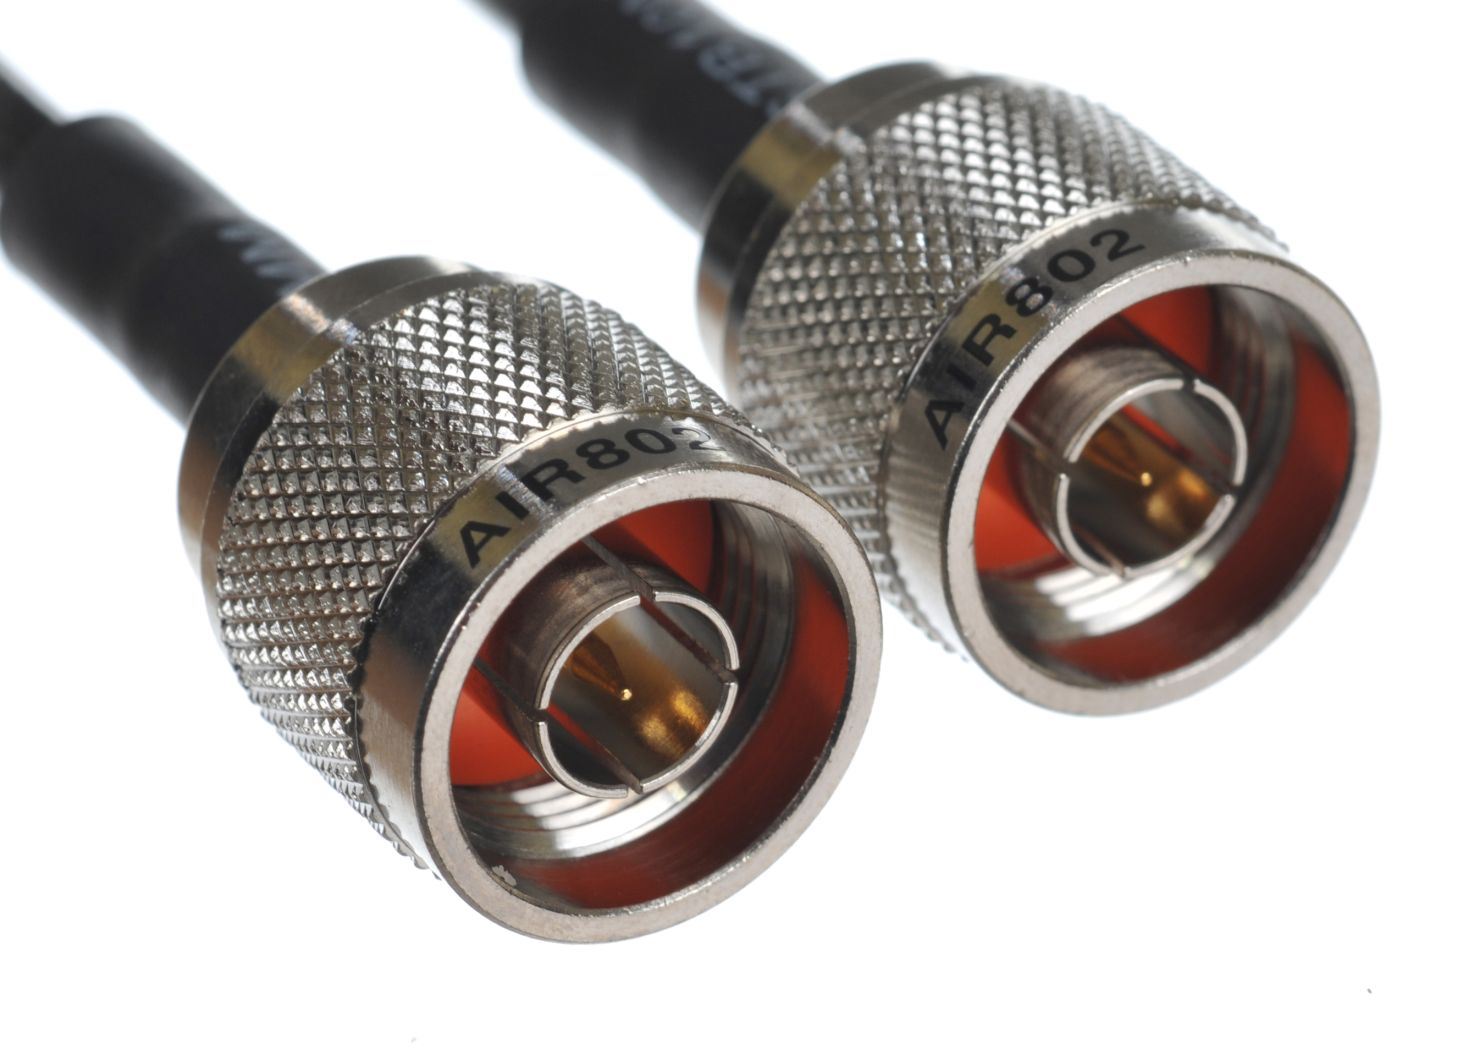 CA195 1 foot black antenna cable assembly or jumper with n plug male connectors at each end 1 foot equivalent to lmr195 and a rg58 replacement